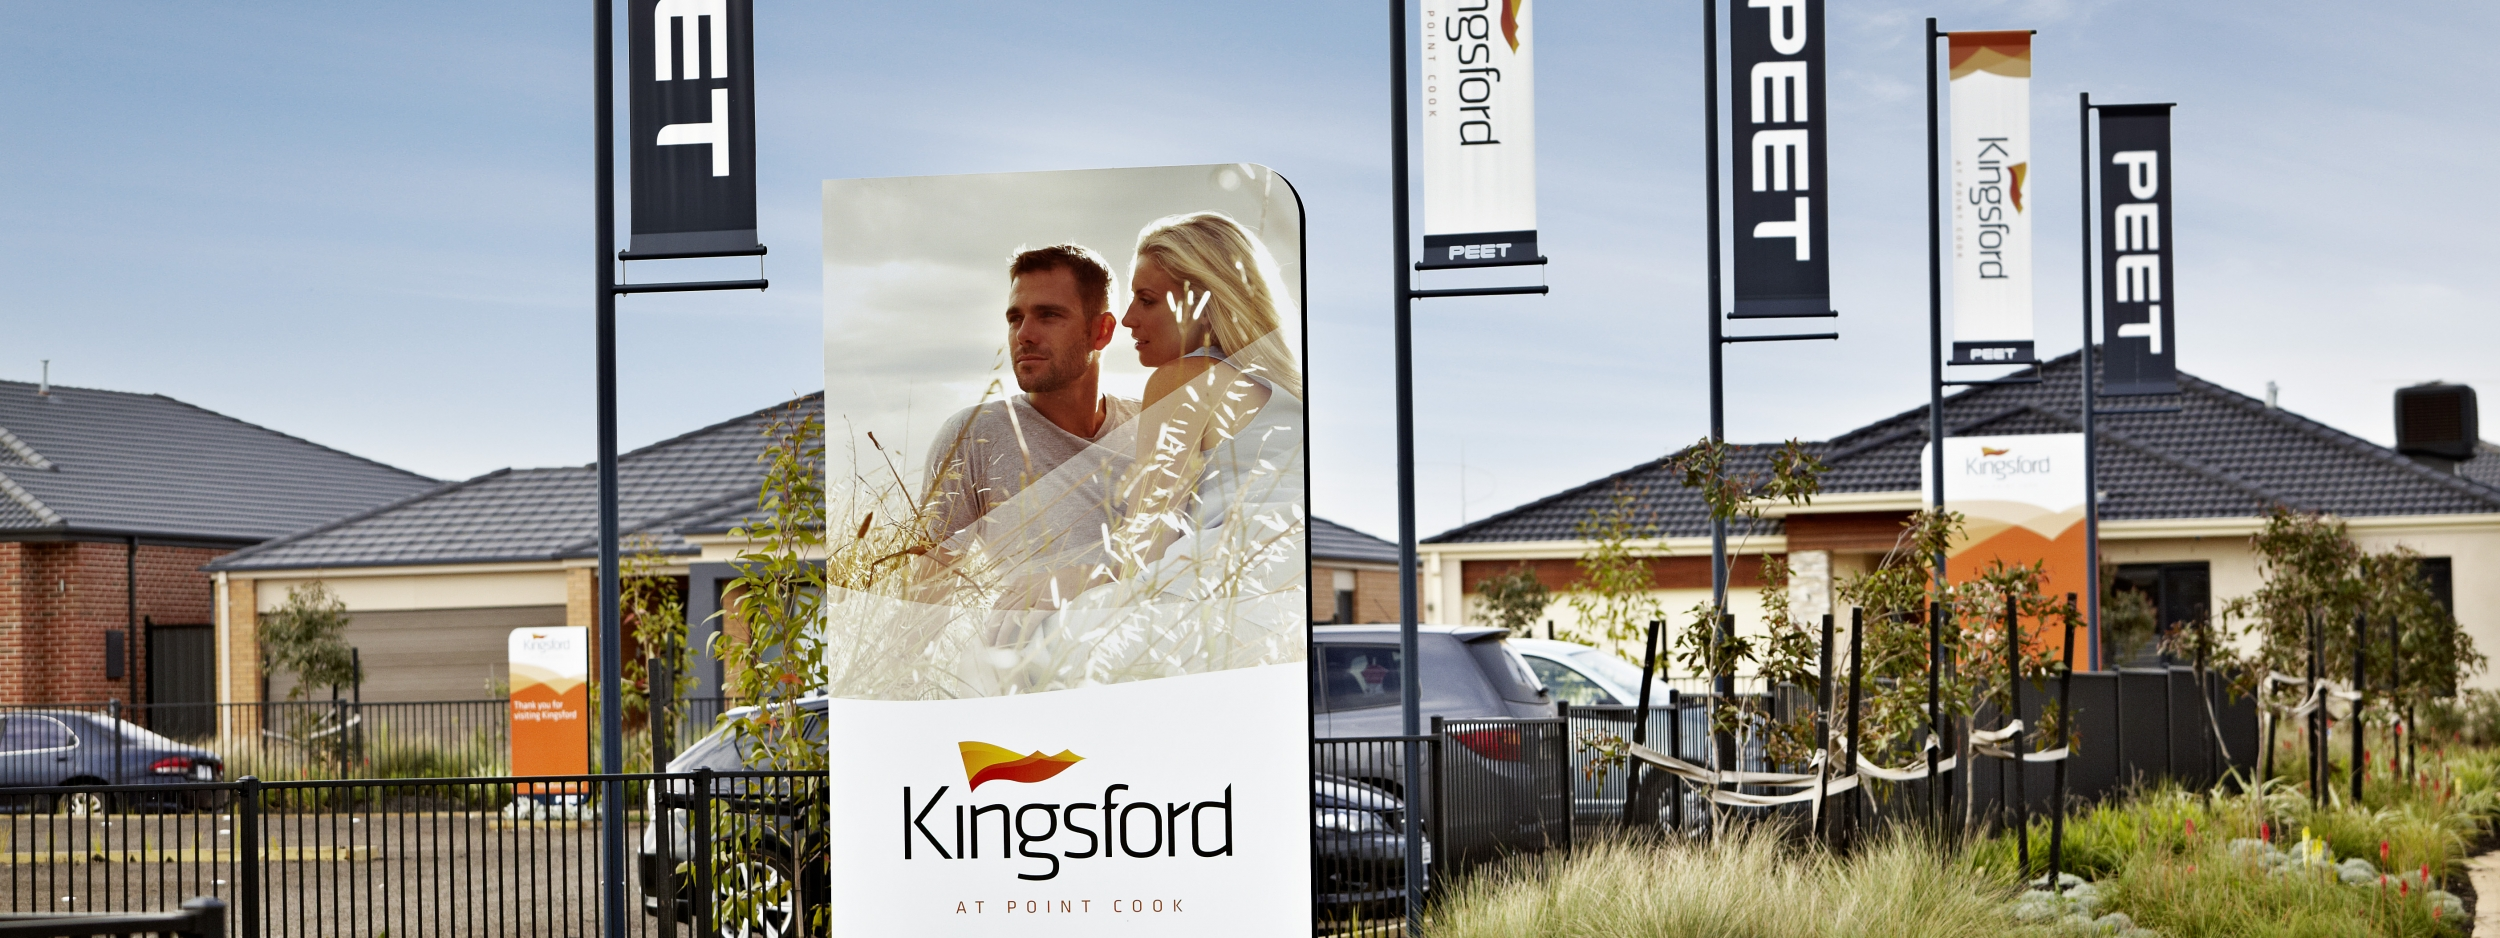 Kingsford Development Signage